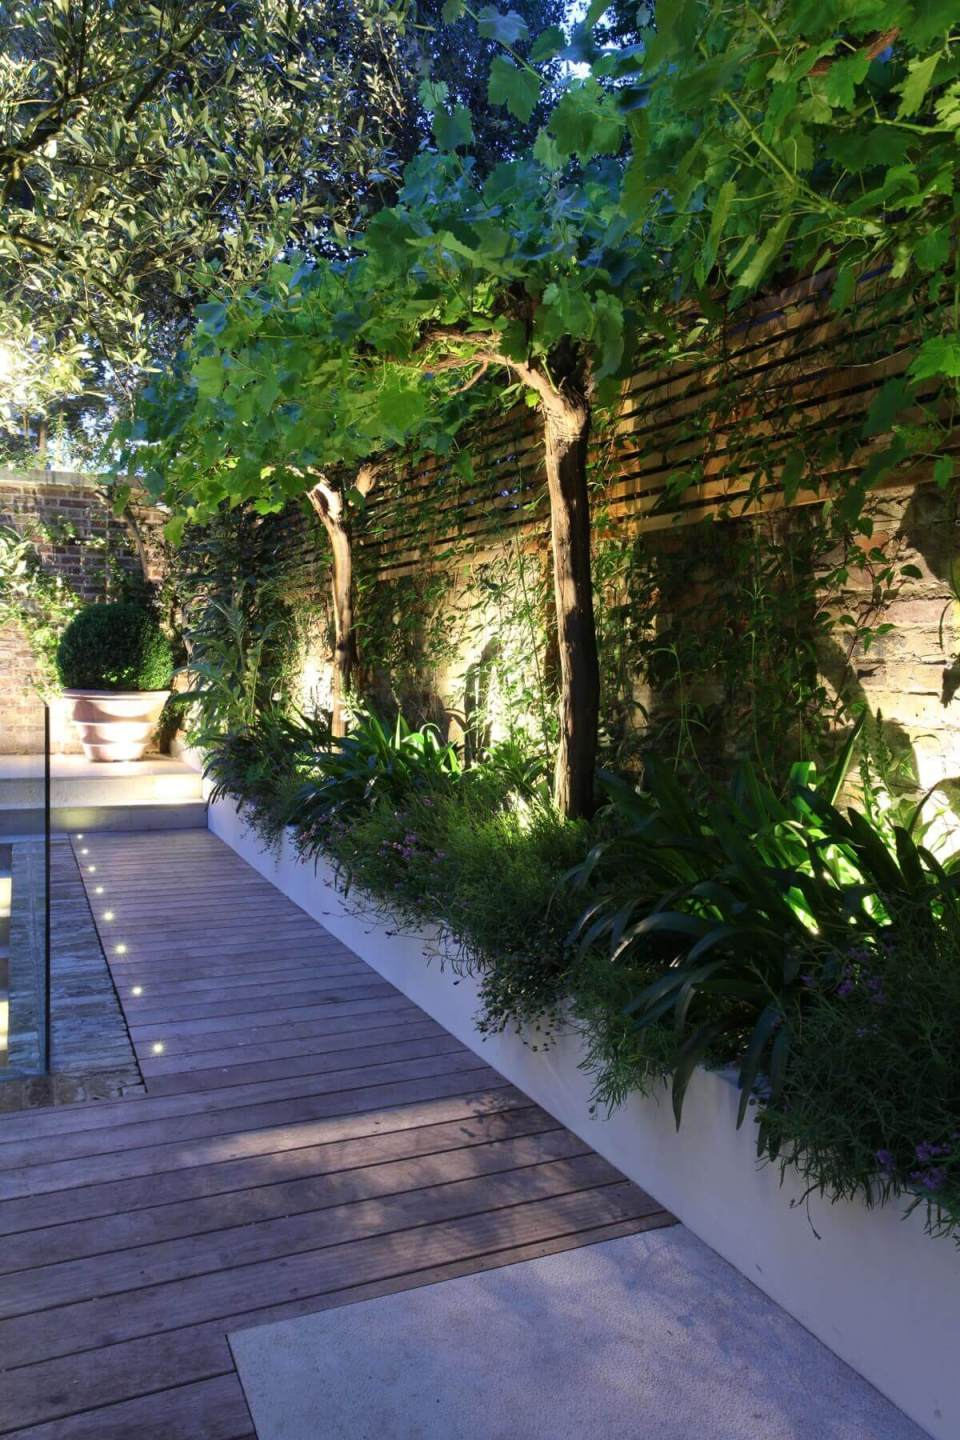 Built-In Deck Planters for Privacy